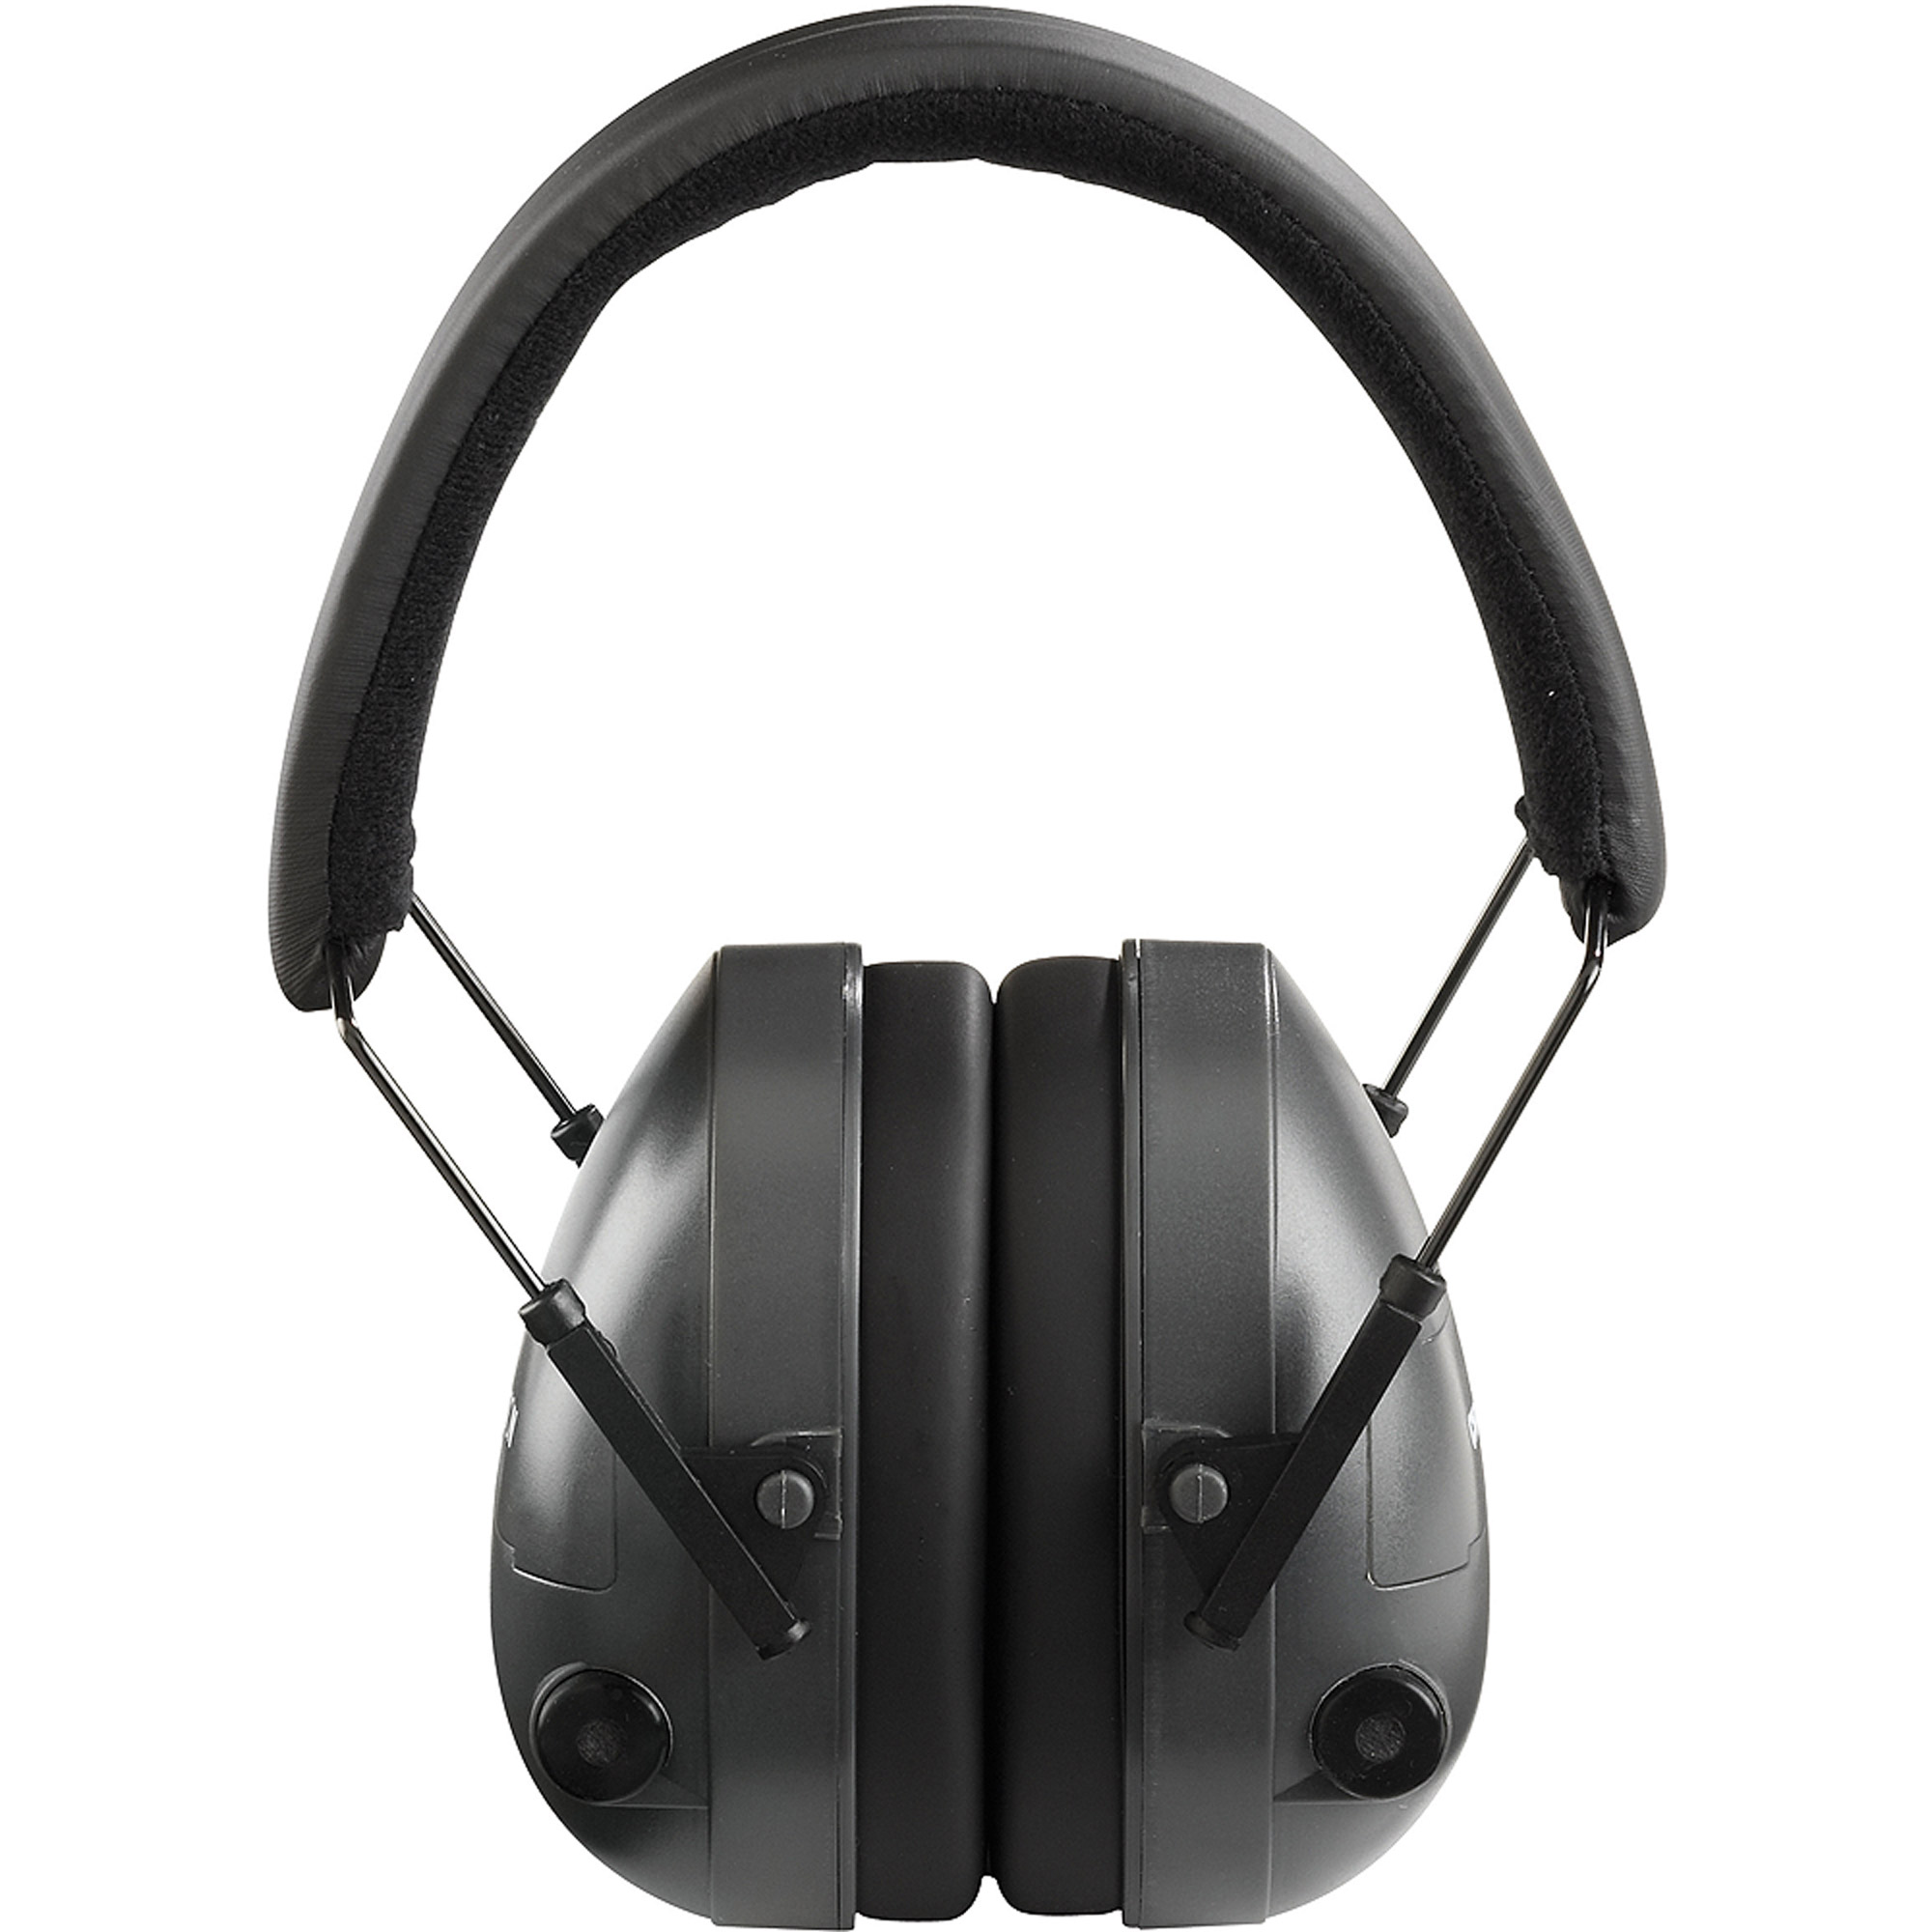 Champion Traps and Targets 21db NRR Electronic Earmuffs, Plastic, Black